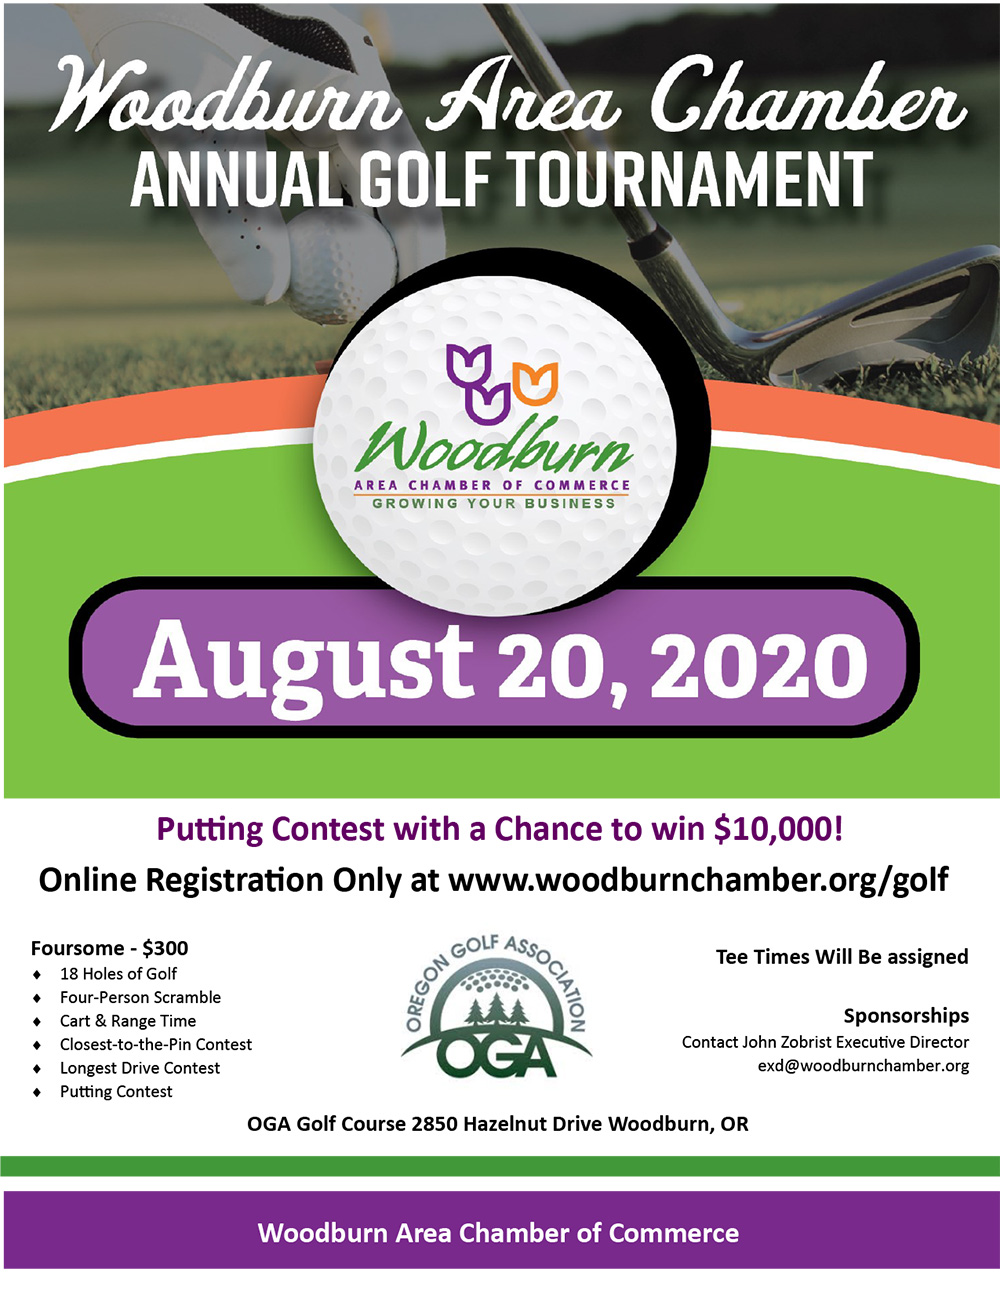 August 2020 Woodburn Area Chamber Annual Golf Tournament - image of flyer